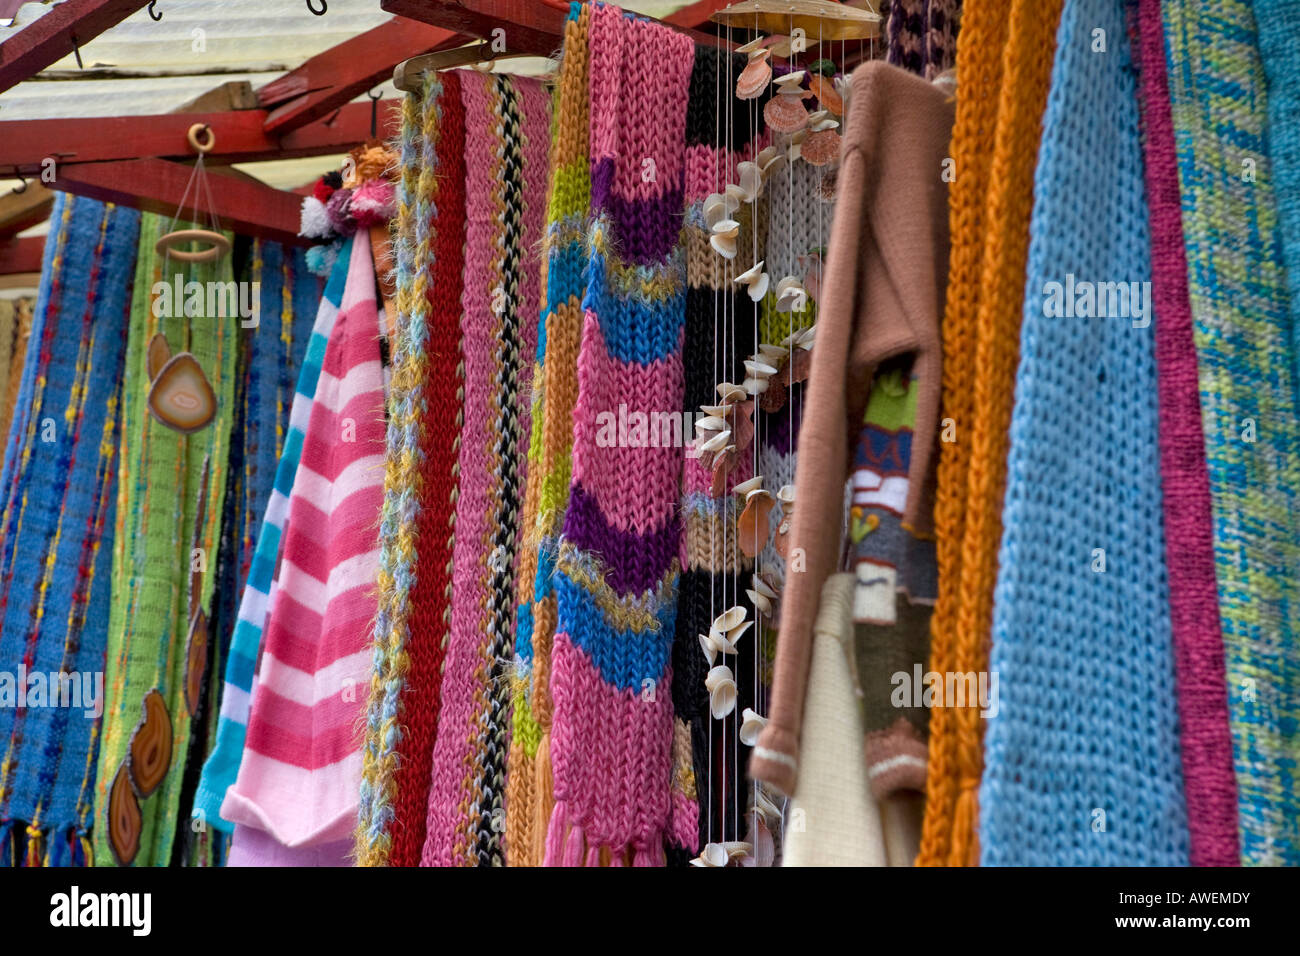 Knitted Goods For Sale At A Handicrafts Markets In Puerto Mont Stock